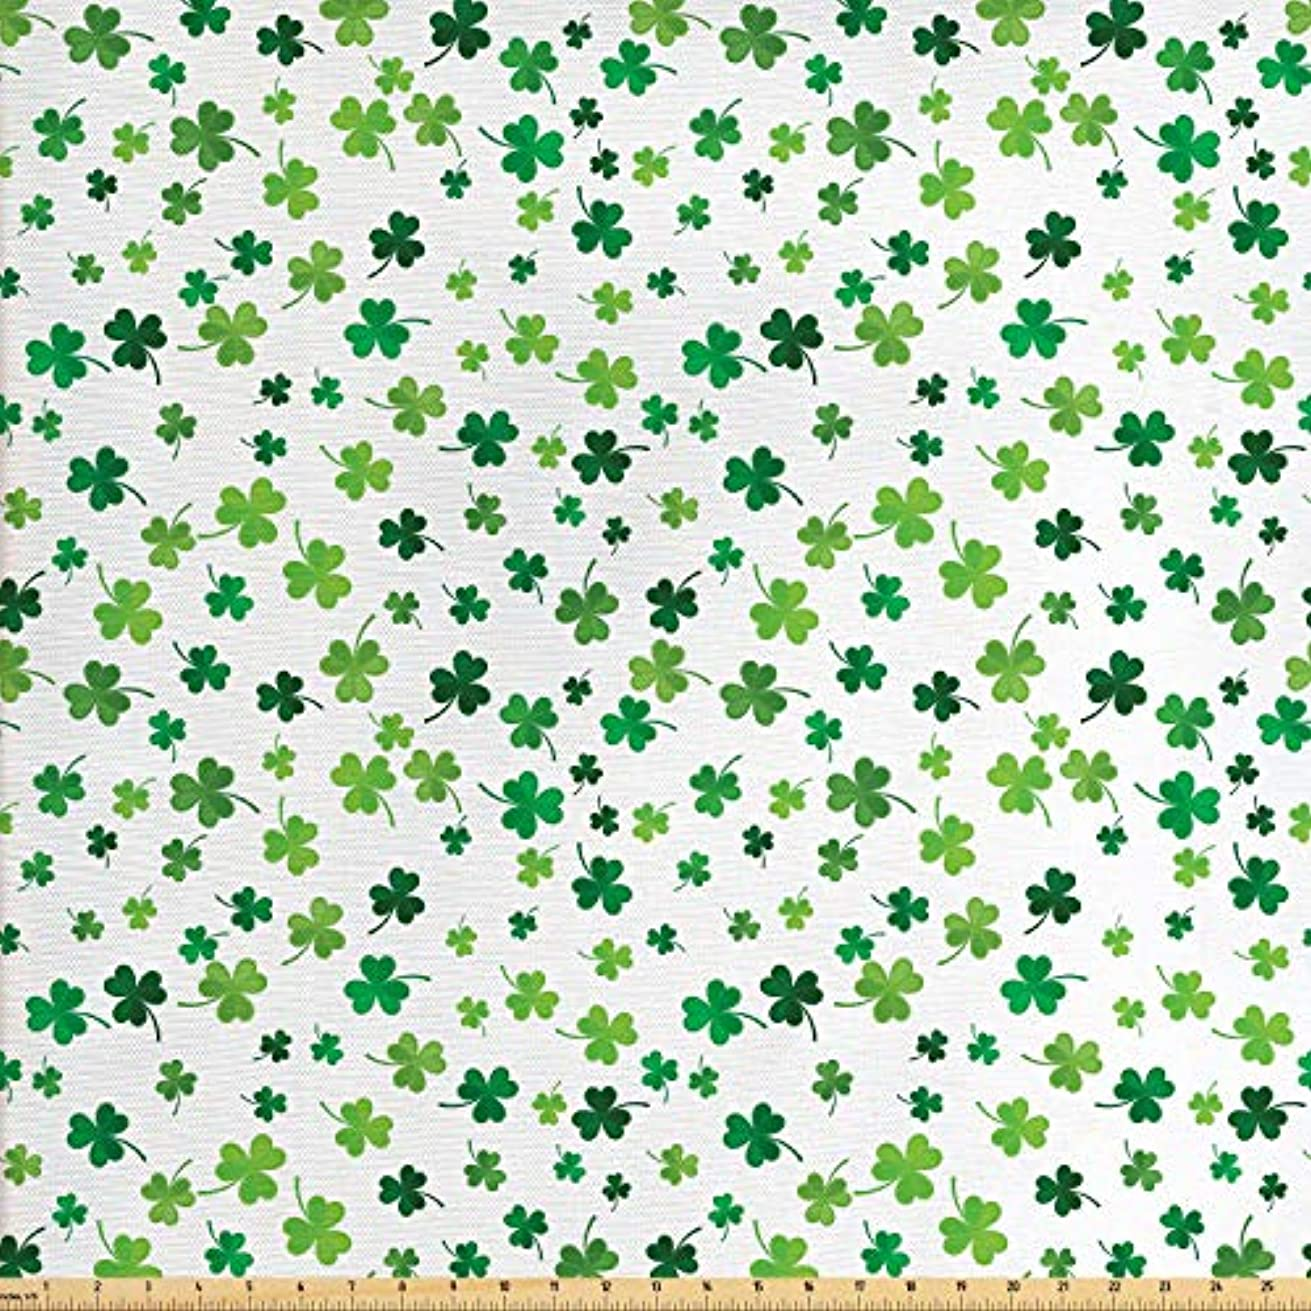 Lunarable Shamrock Fabric by The Yard, St Patrick's Day Clovers Design Motifs from Celtic Folklore Spring, Decorative Fabric for Upholstery and Home Accents, 3 Yards, Green Dark Green Sea Green